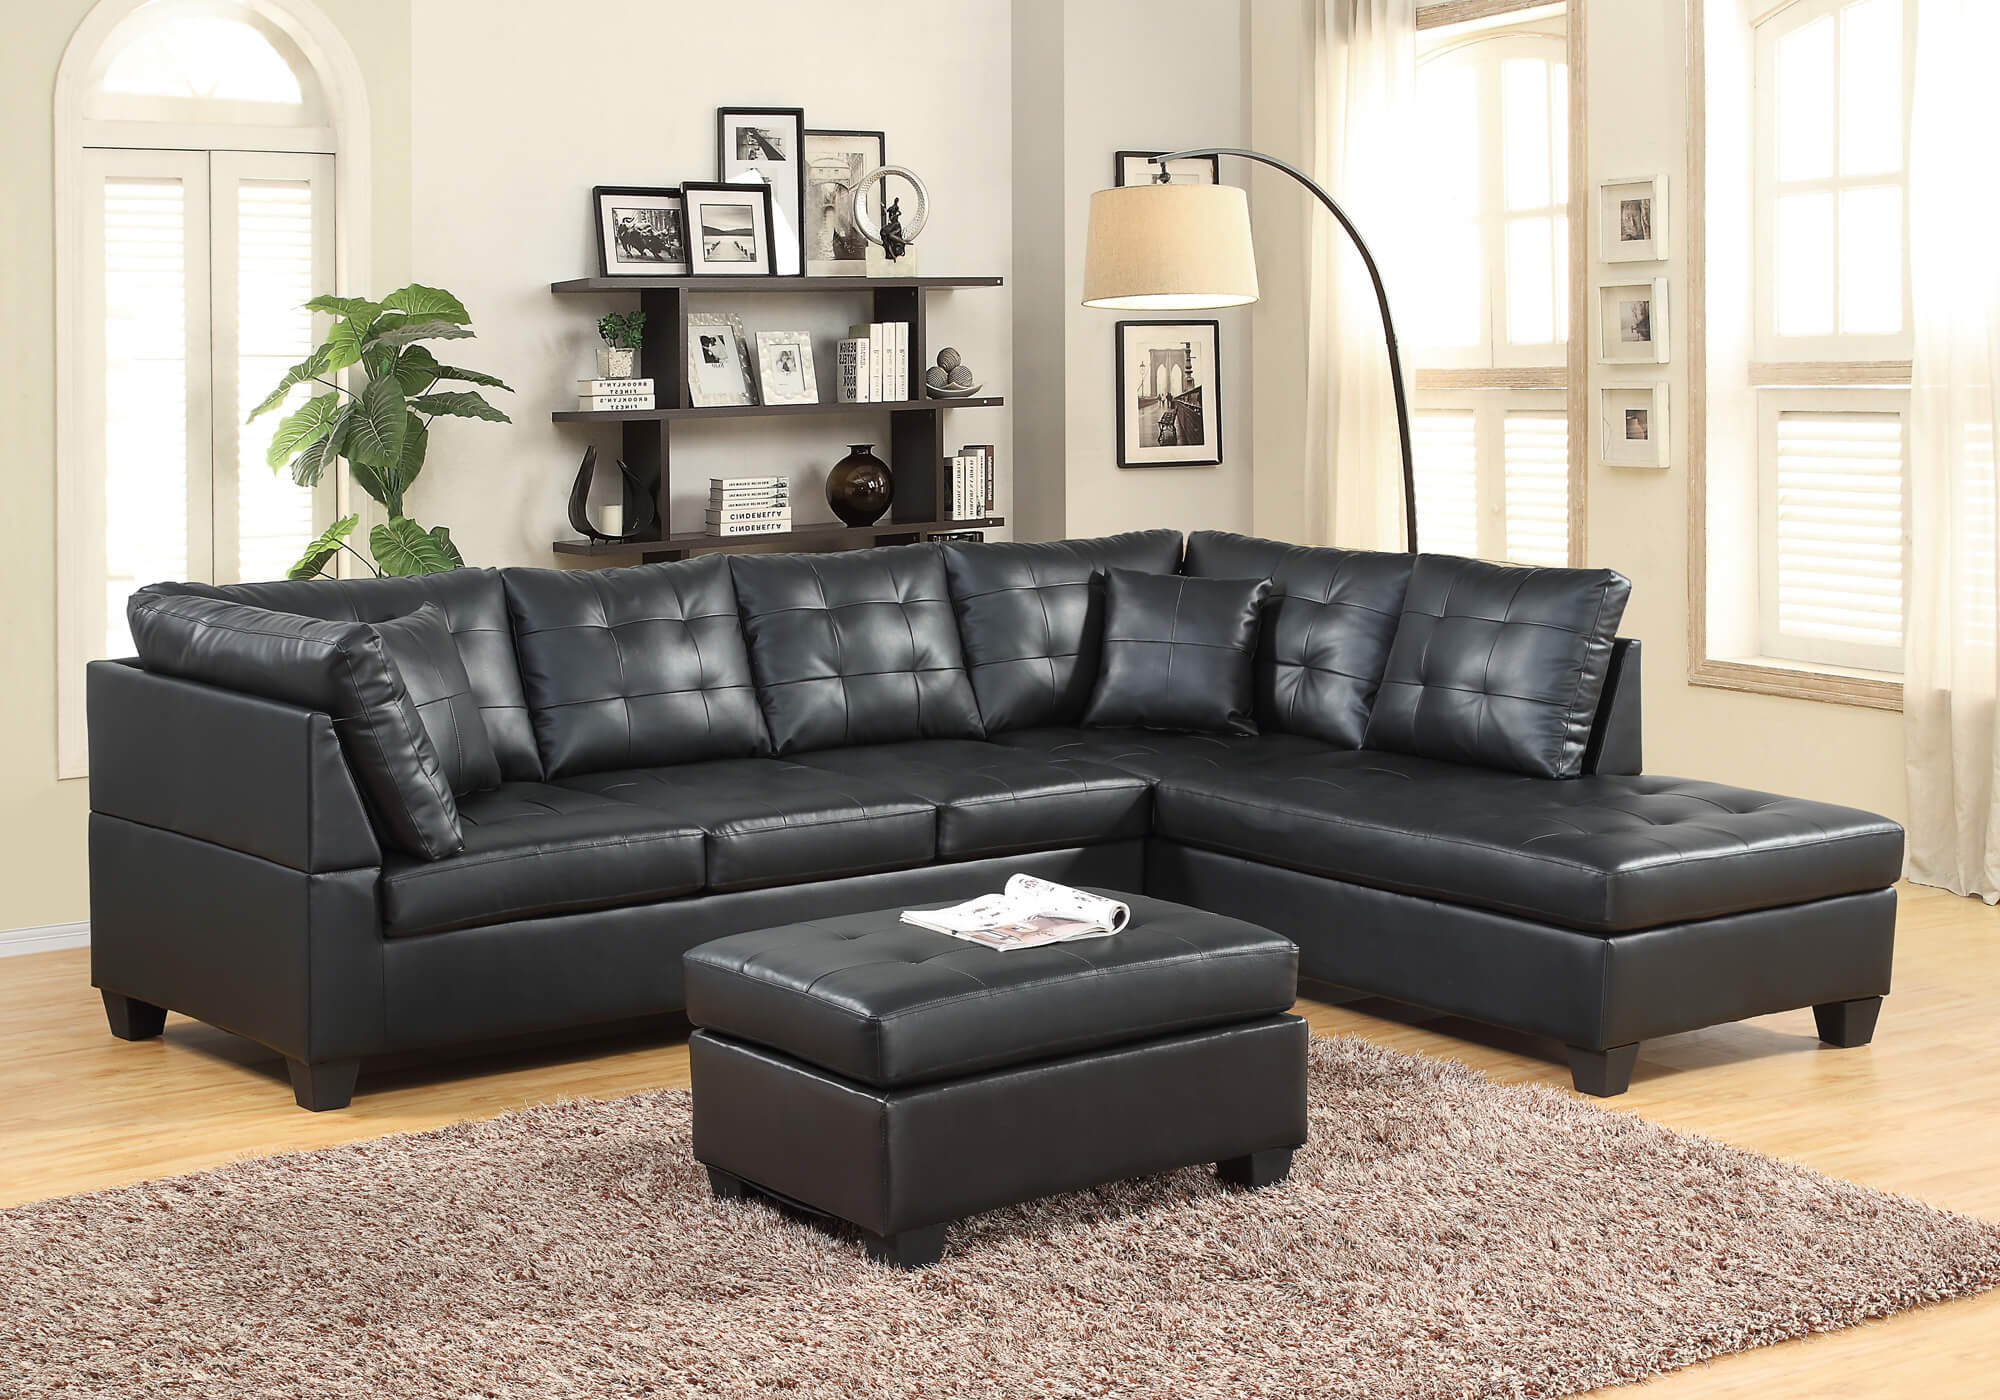 Black leather like sectiona sectional sofa sets - Black livingroom furniture ...